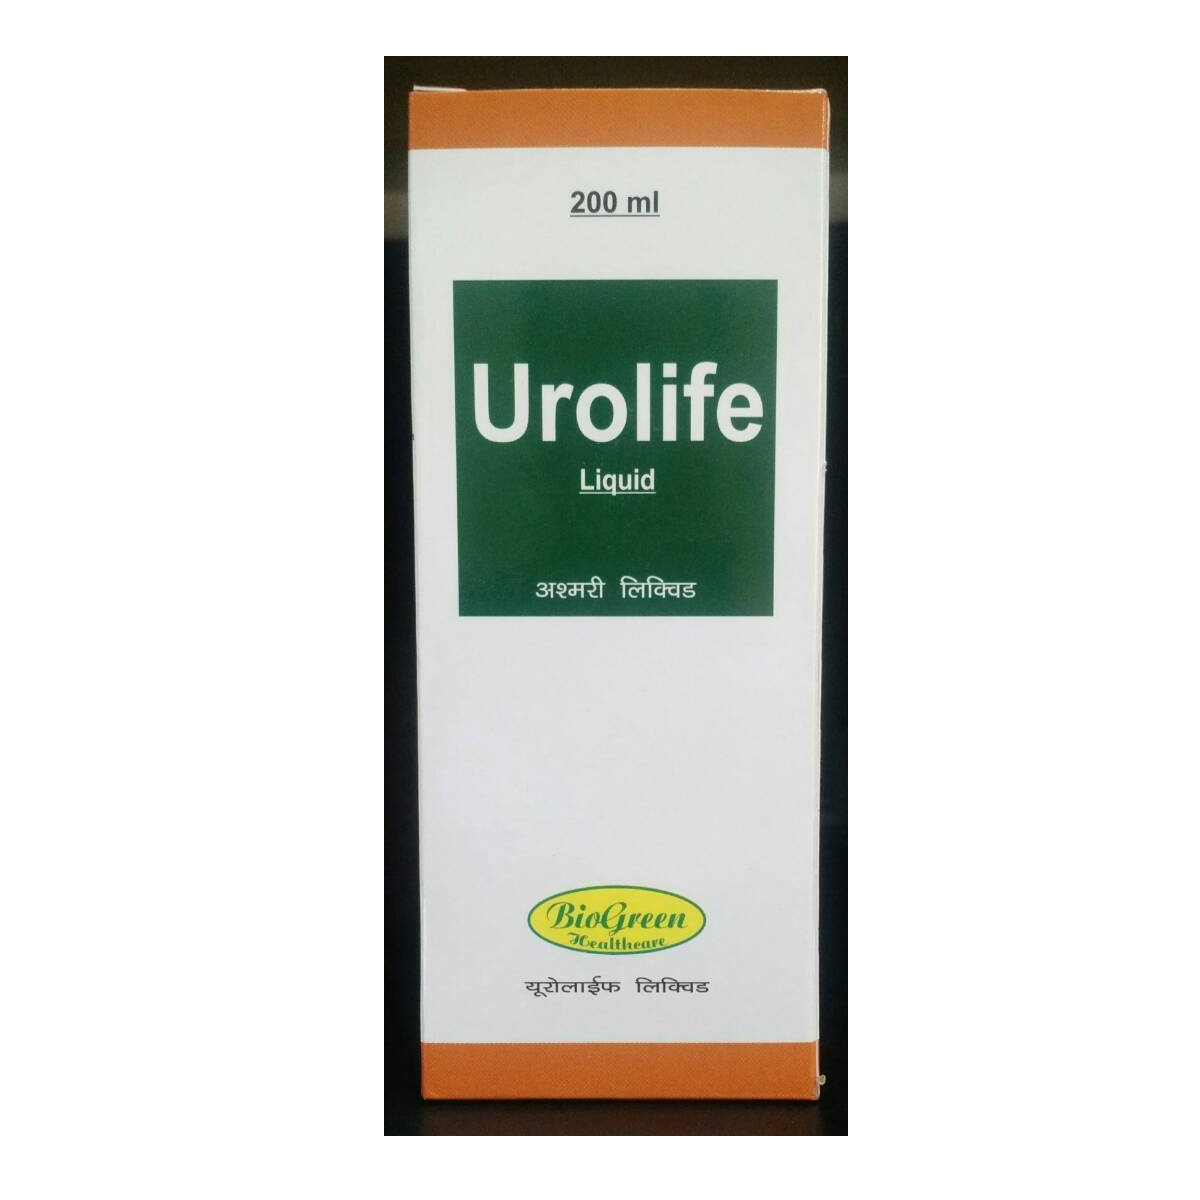 Urolife Liquid In Port Blair